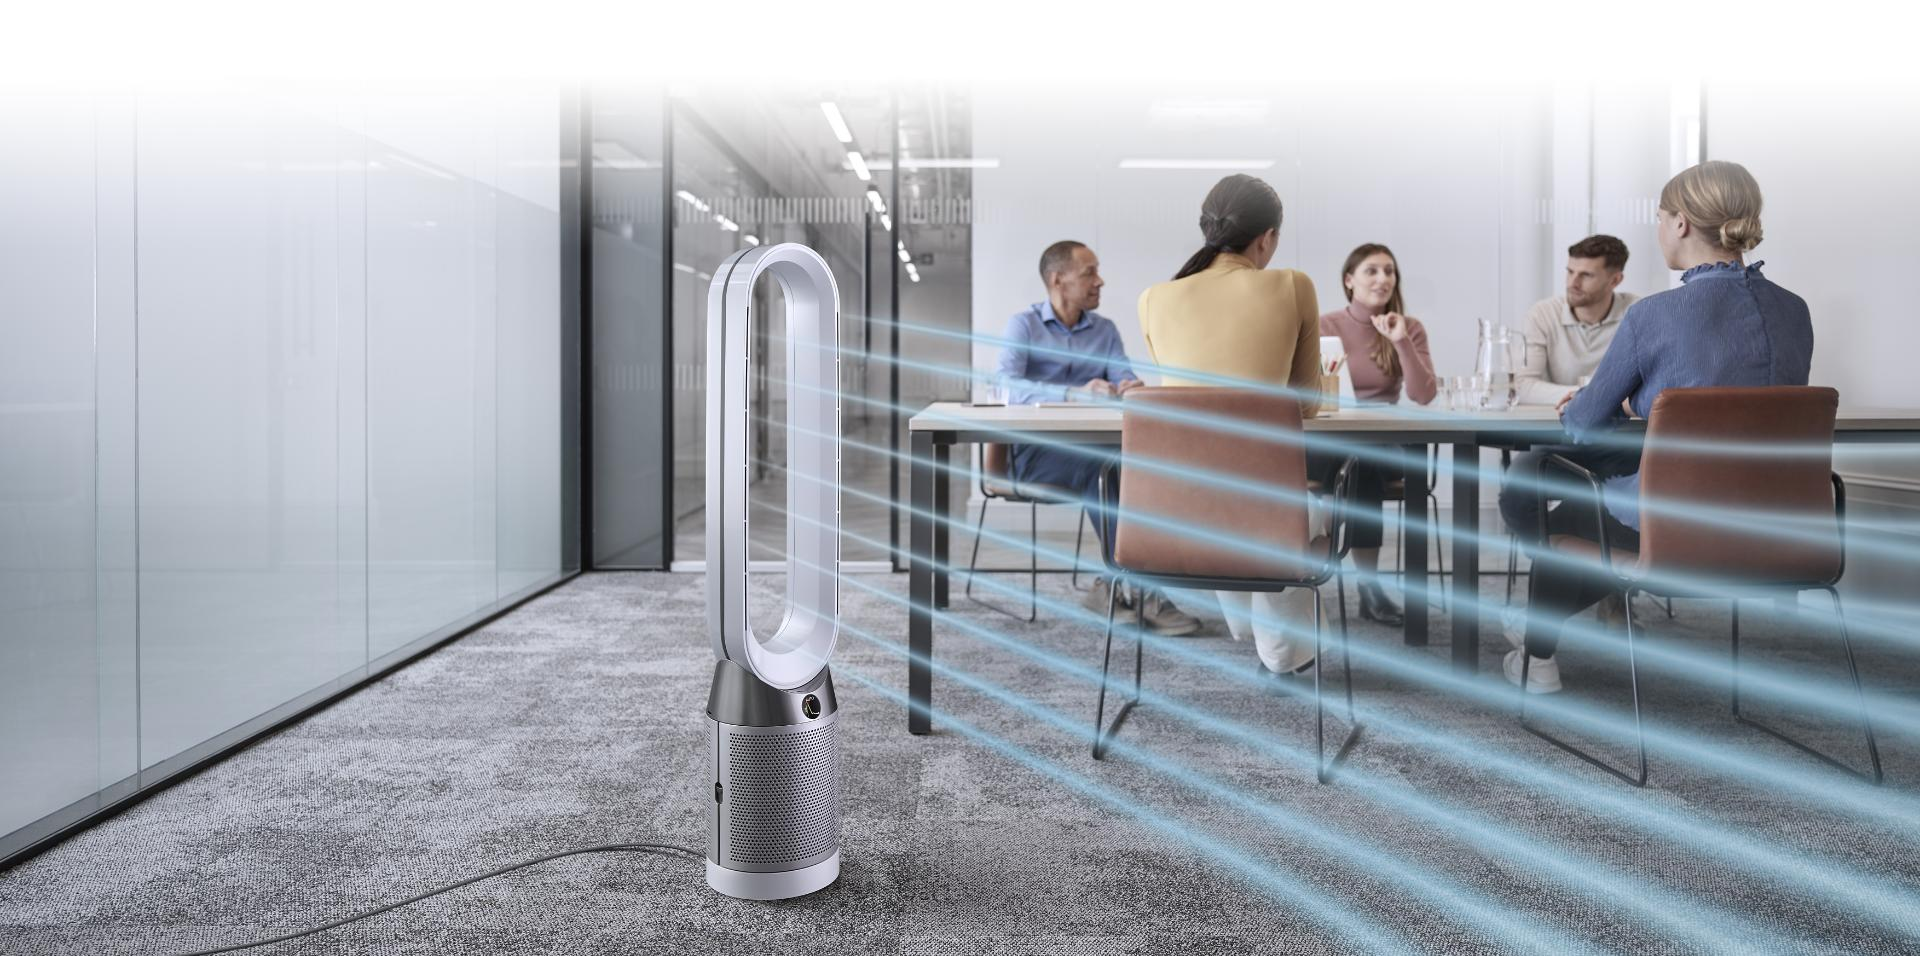 Dyson purifier in an office setting